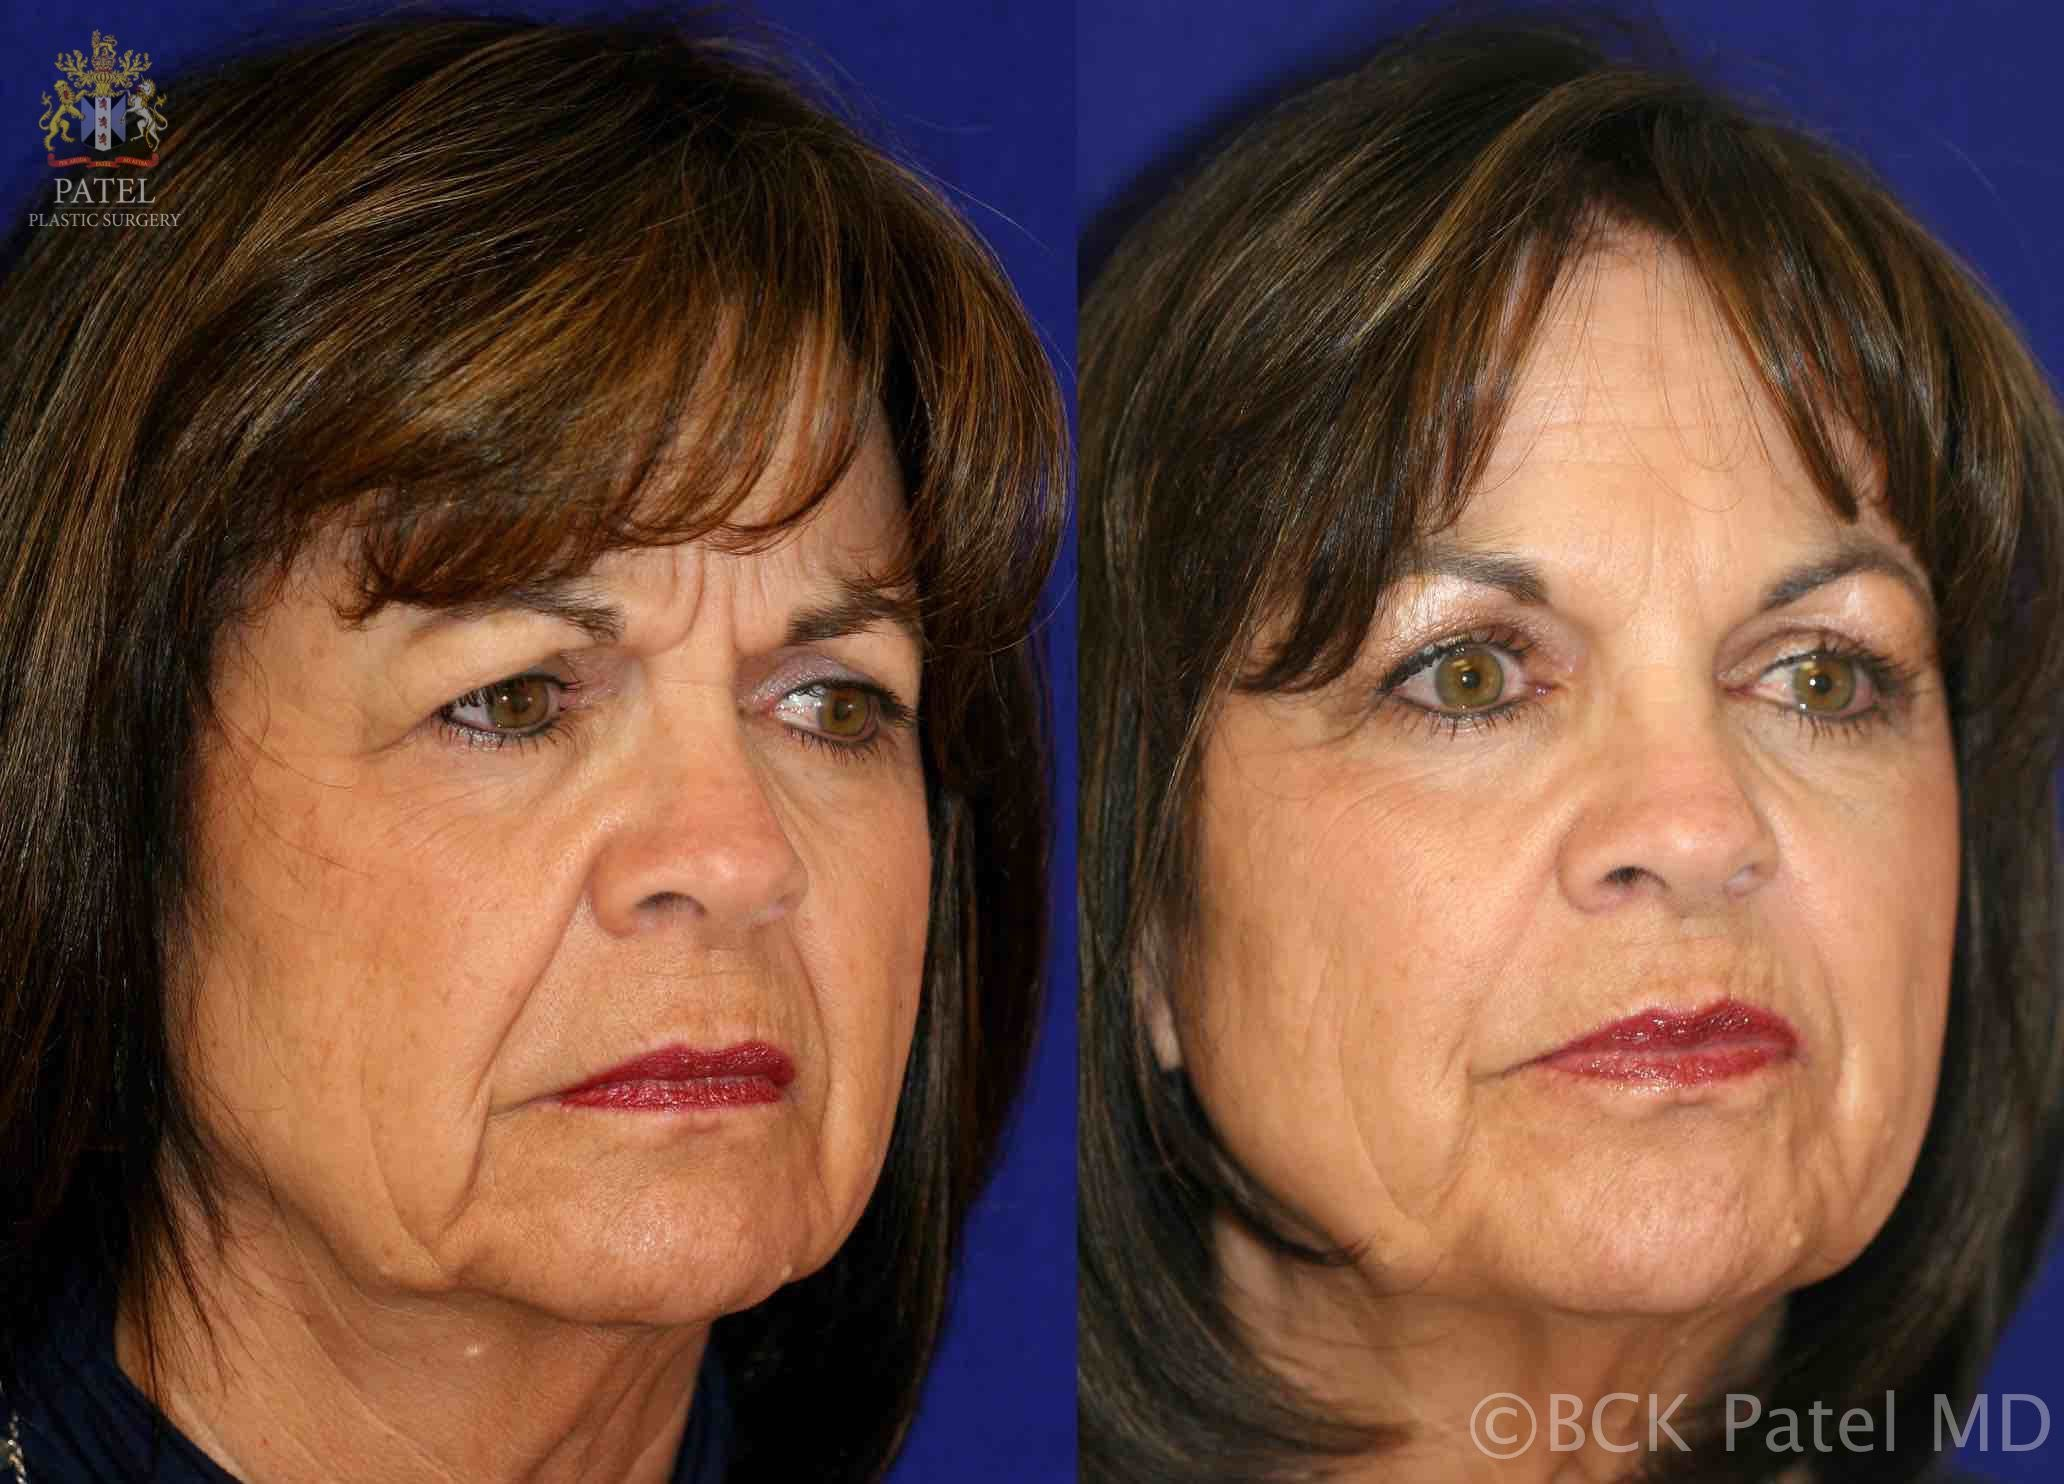 englishsurgeon.com. Photos showing the improvement in cheeks and nasolabial folds with fillers. BCK Patel MD, FRCS